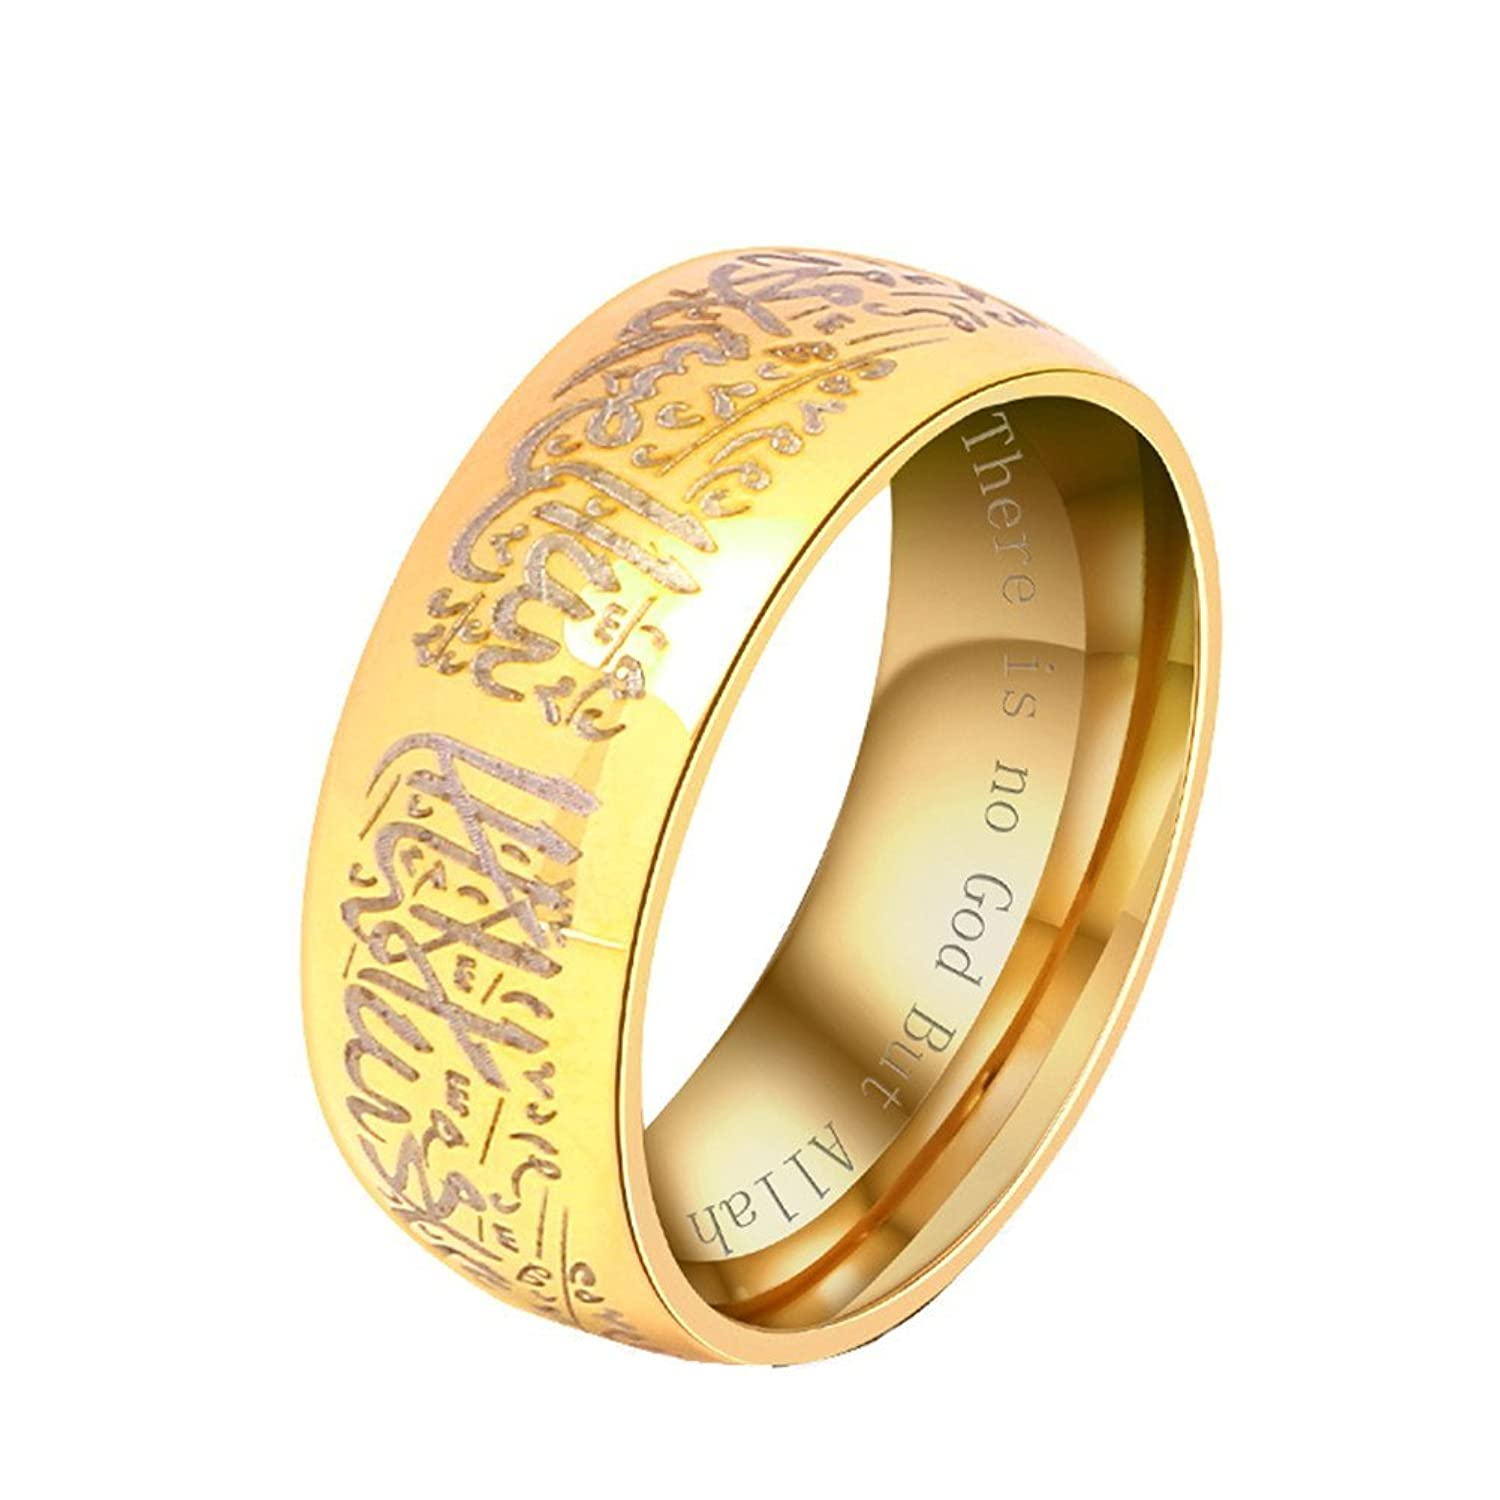 LANHI Men's Stainless Steel Muslim Islamic Ring with Shahada in Arabic and English Gold